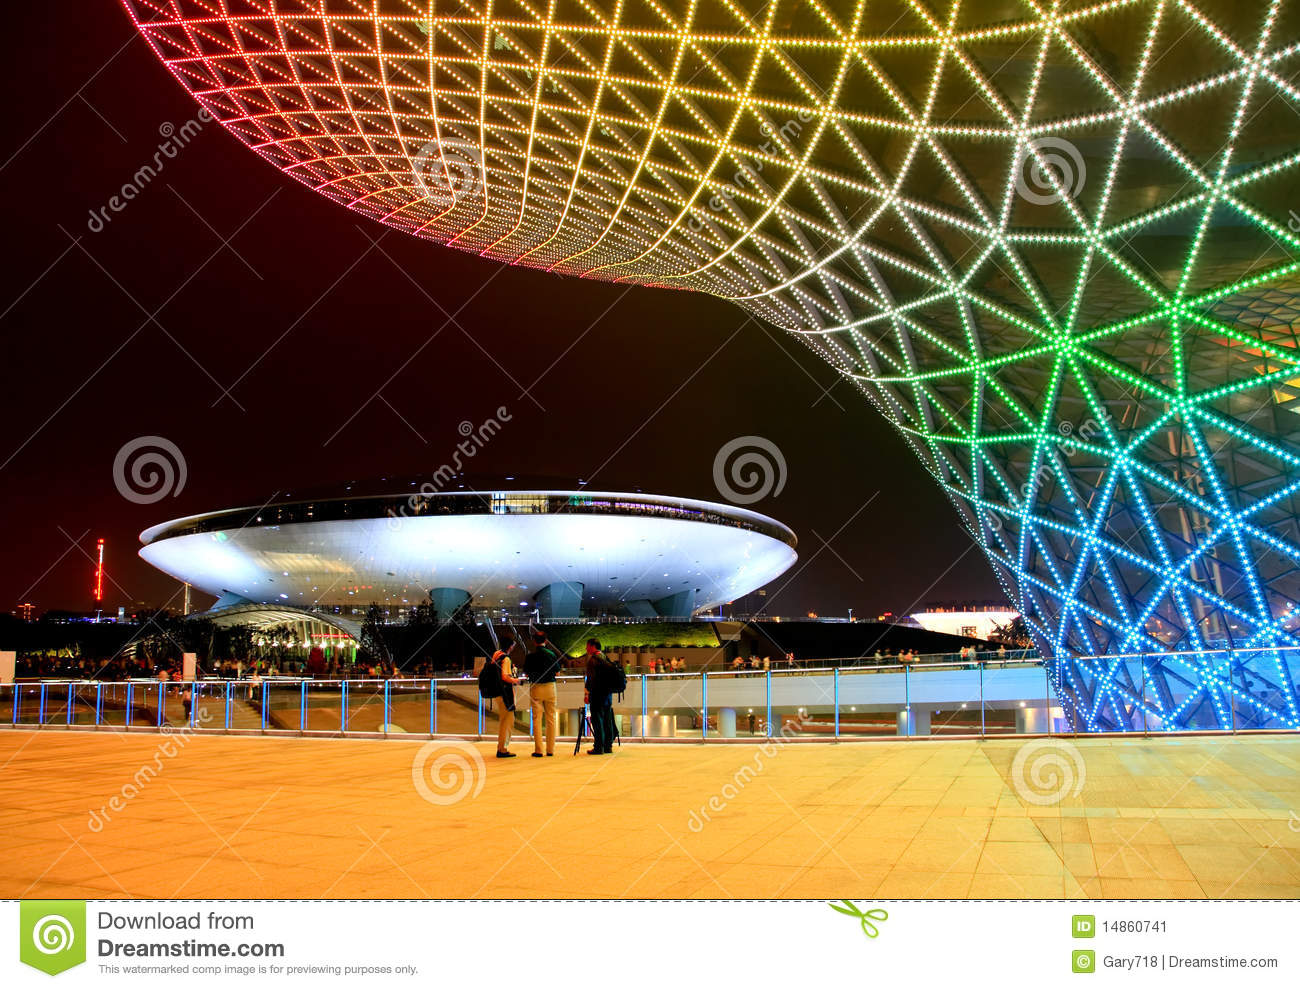 Download The Expo Boulevard At World Expo In Shanghai Editorial Photo - Image of nightscene, architectural: 14860741